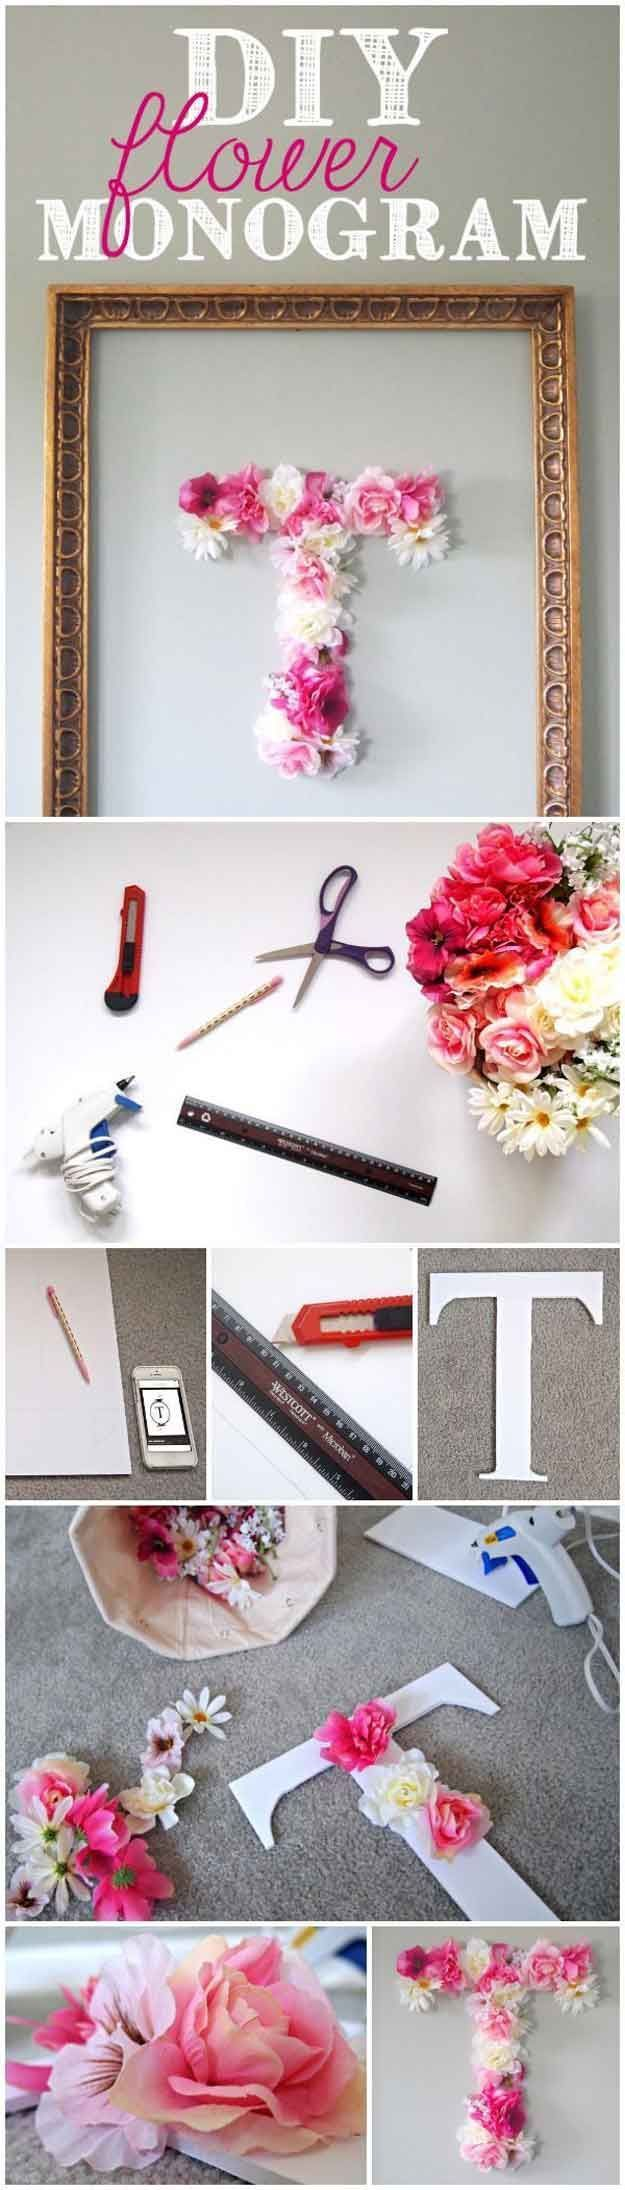 Bedroom Decor Diy Projects best 25+ diy projects for teens ideas only on pinterest | cool diy